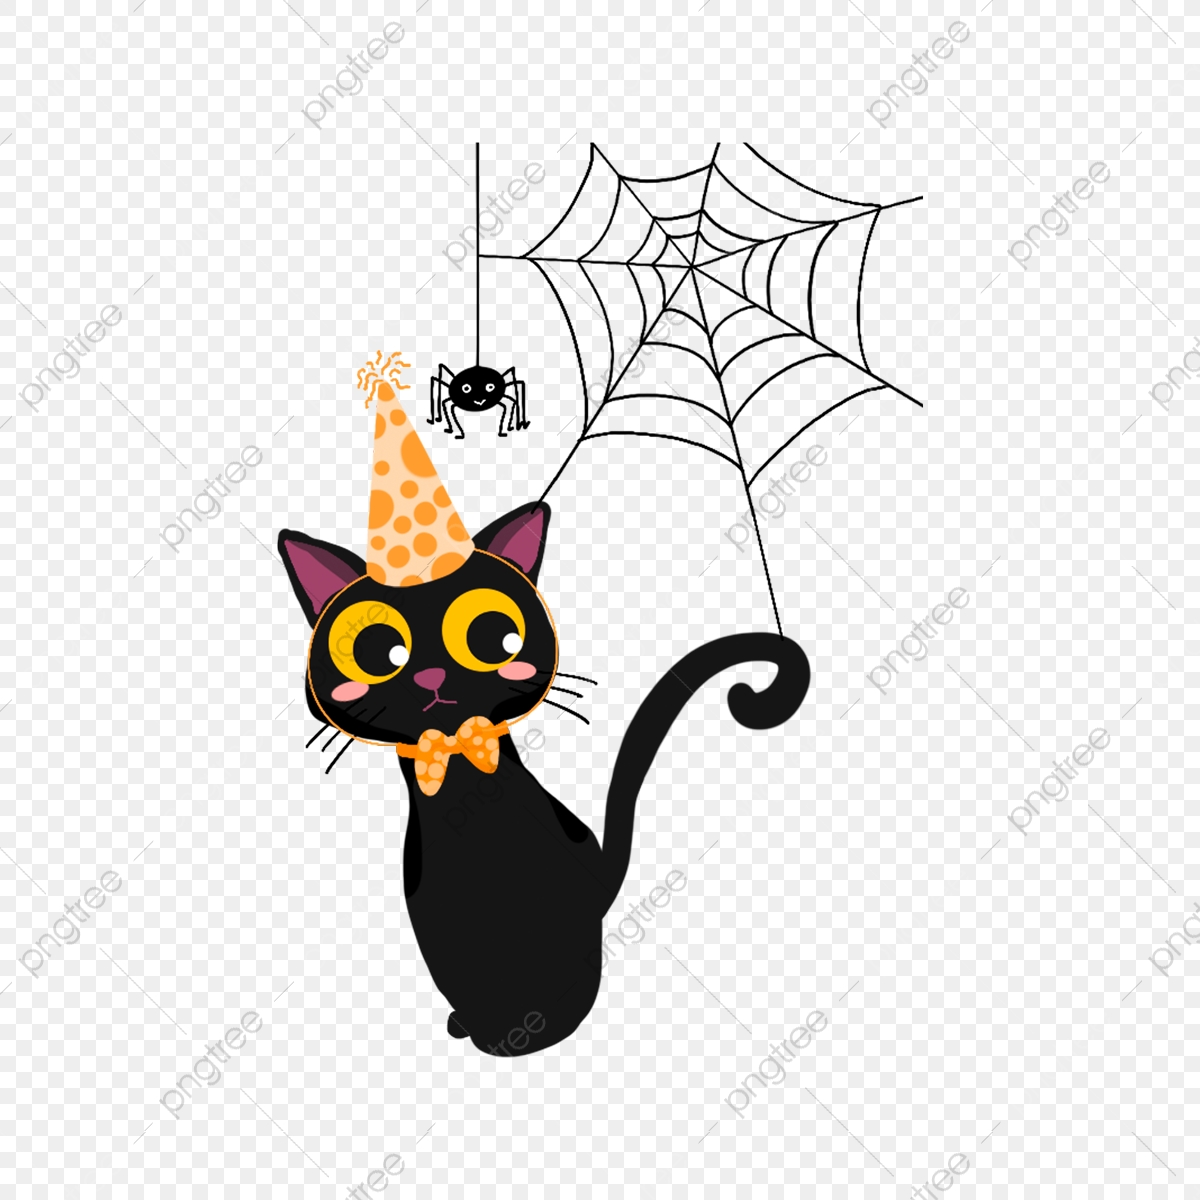 Happy Birthday Cat Spider Web Kitten Happy Birthday Lovely Png Transparent Clipart Image And Psd File For Free Download